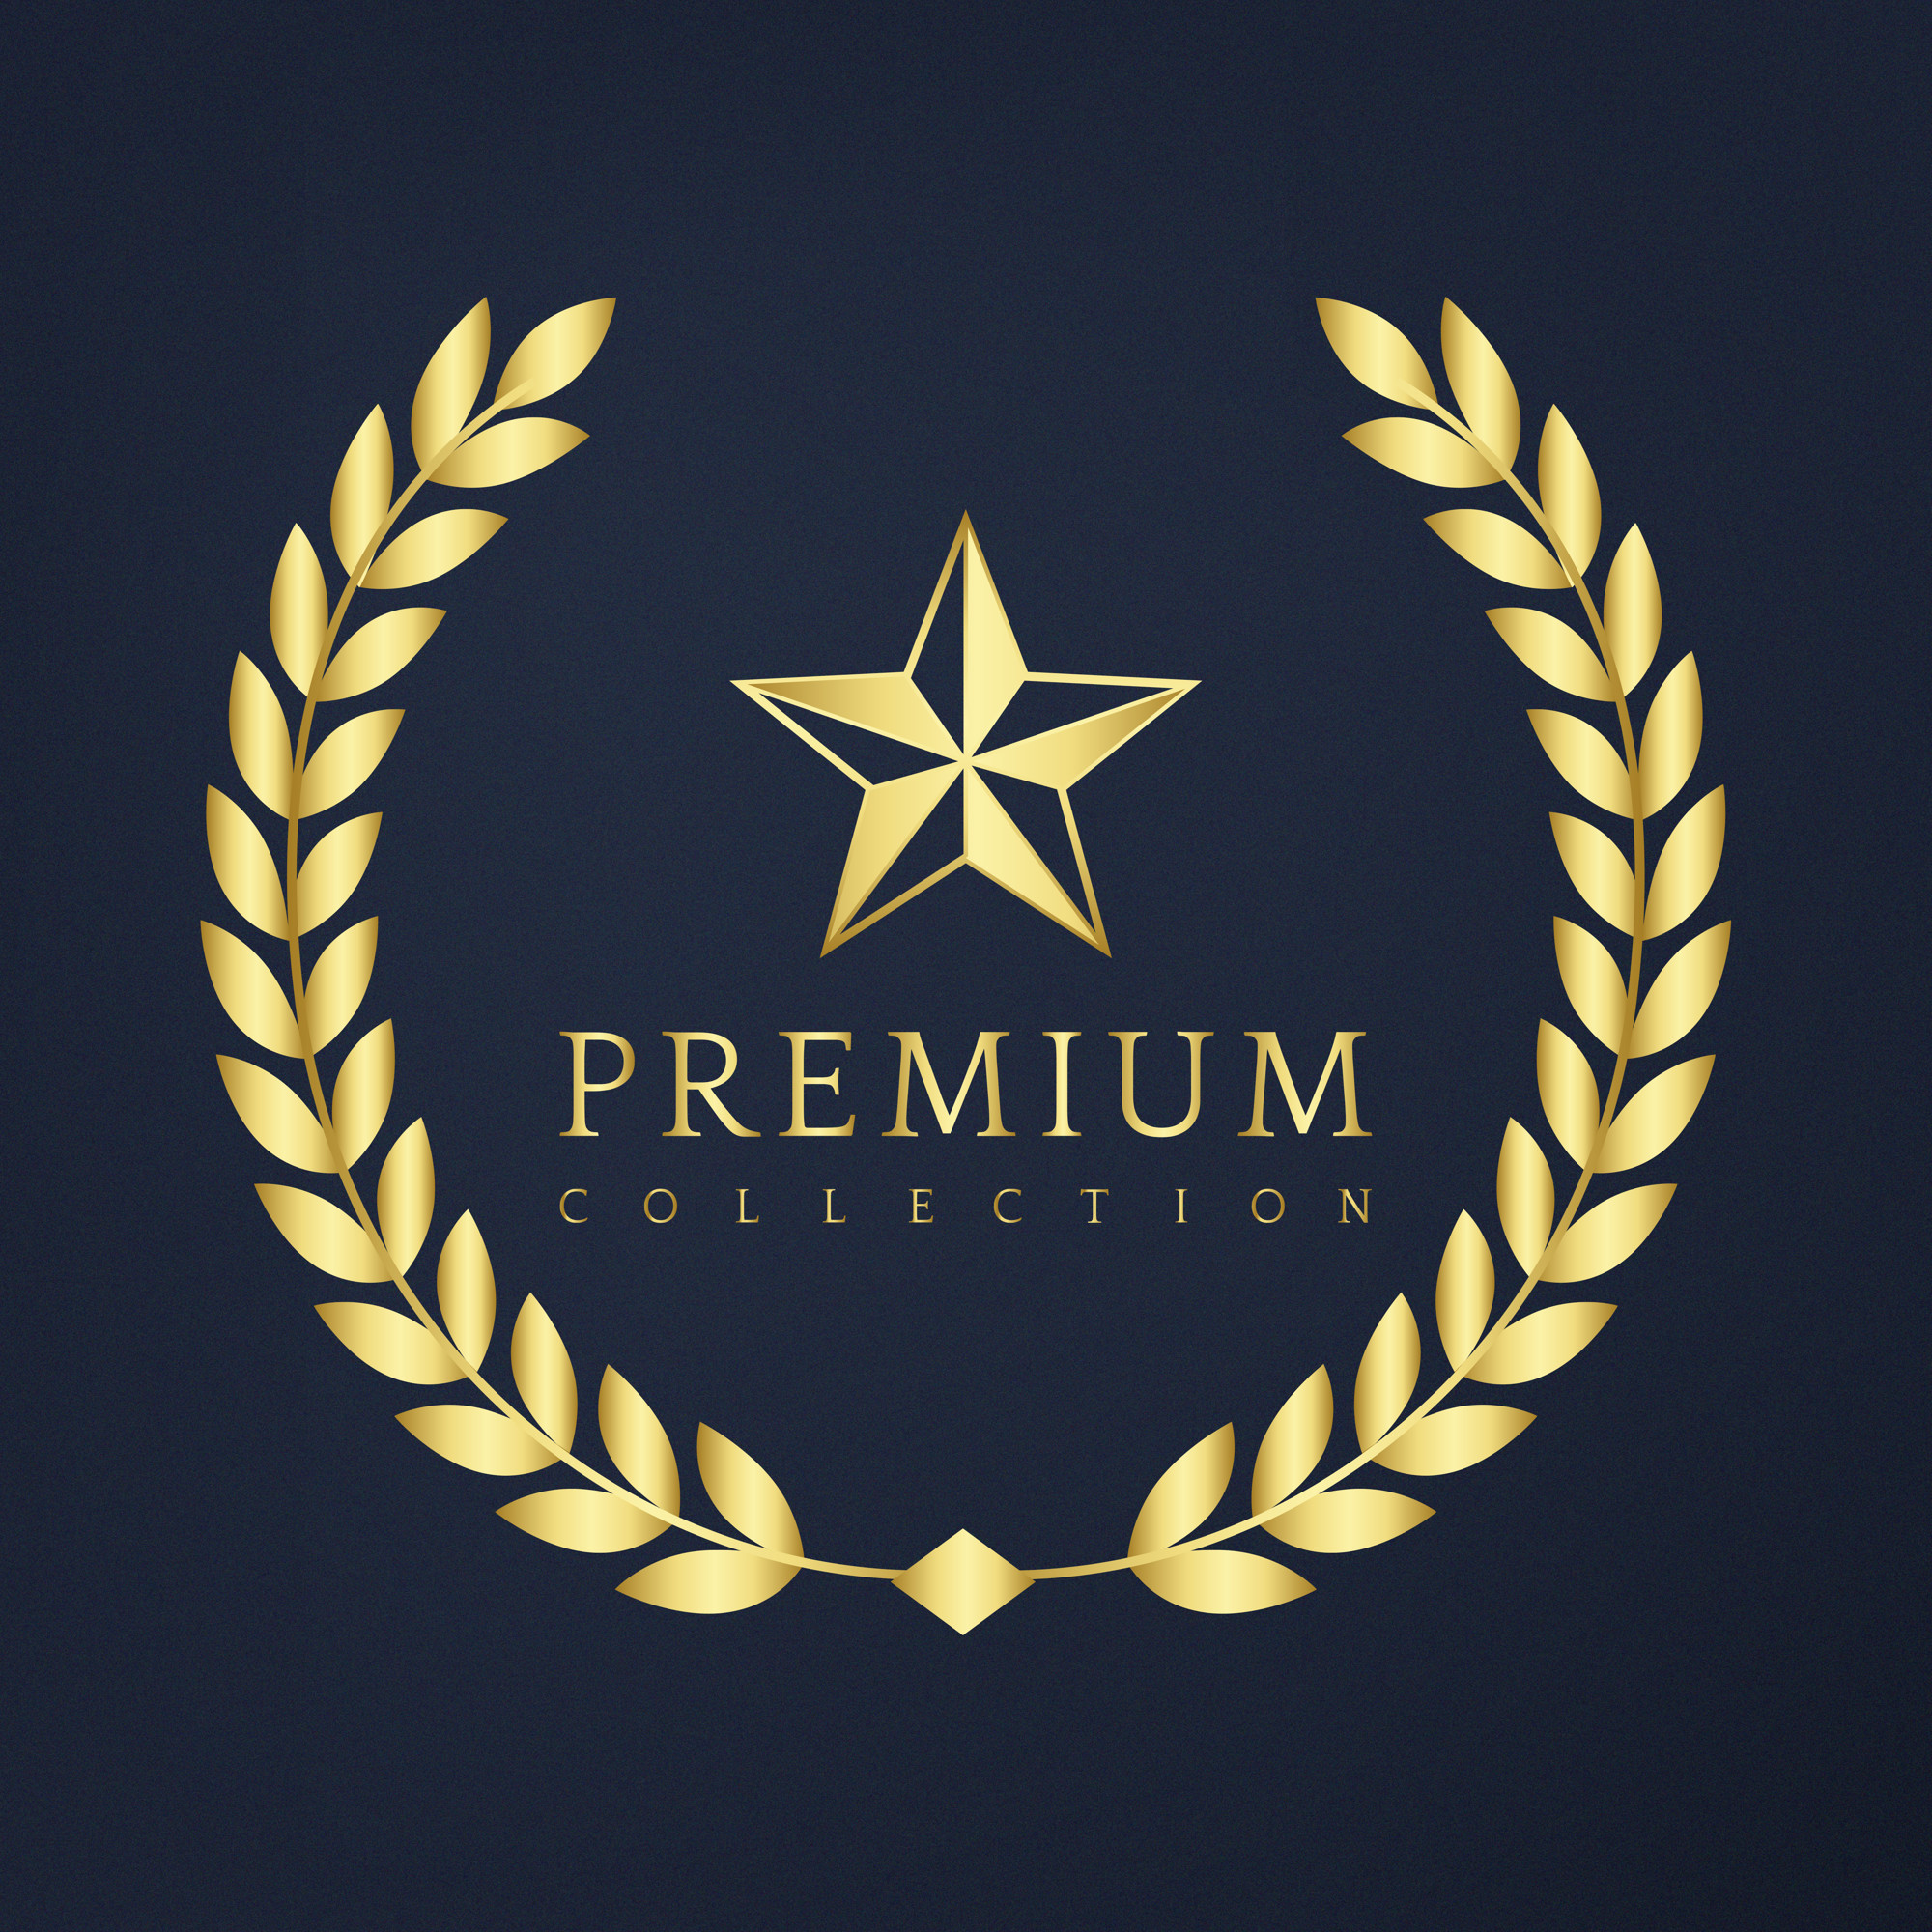 Premium collection badge design